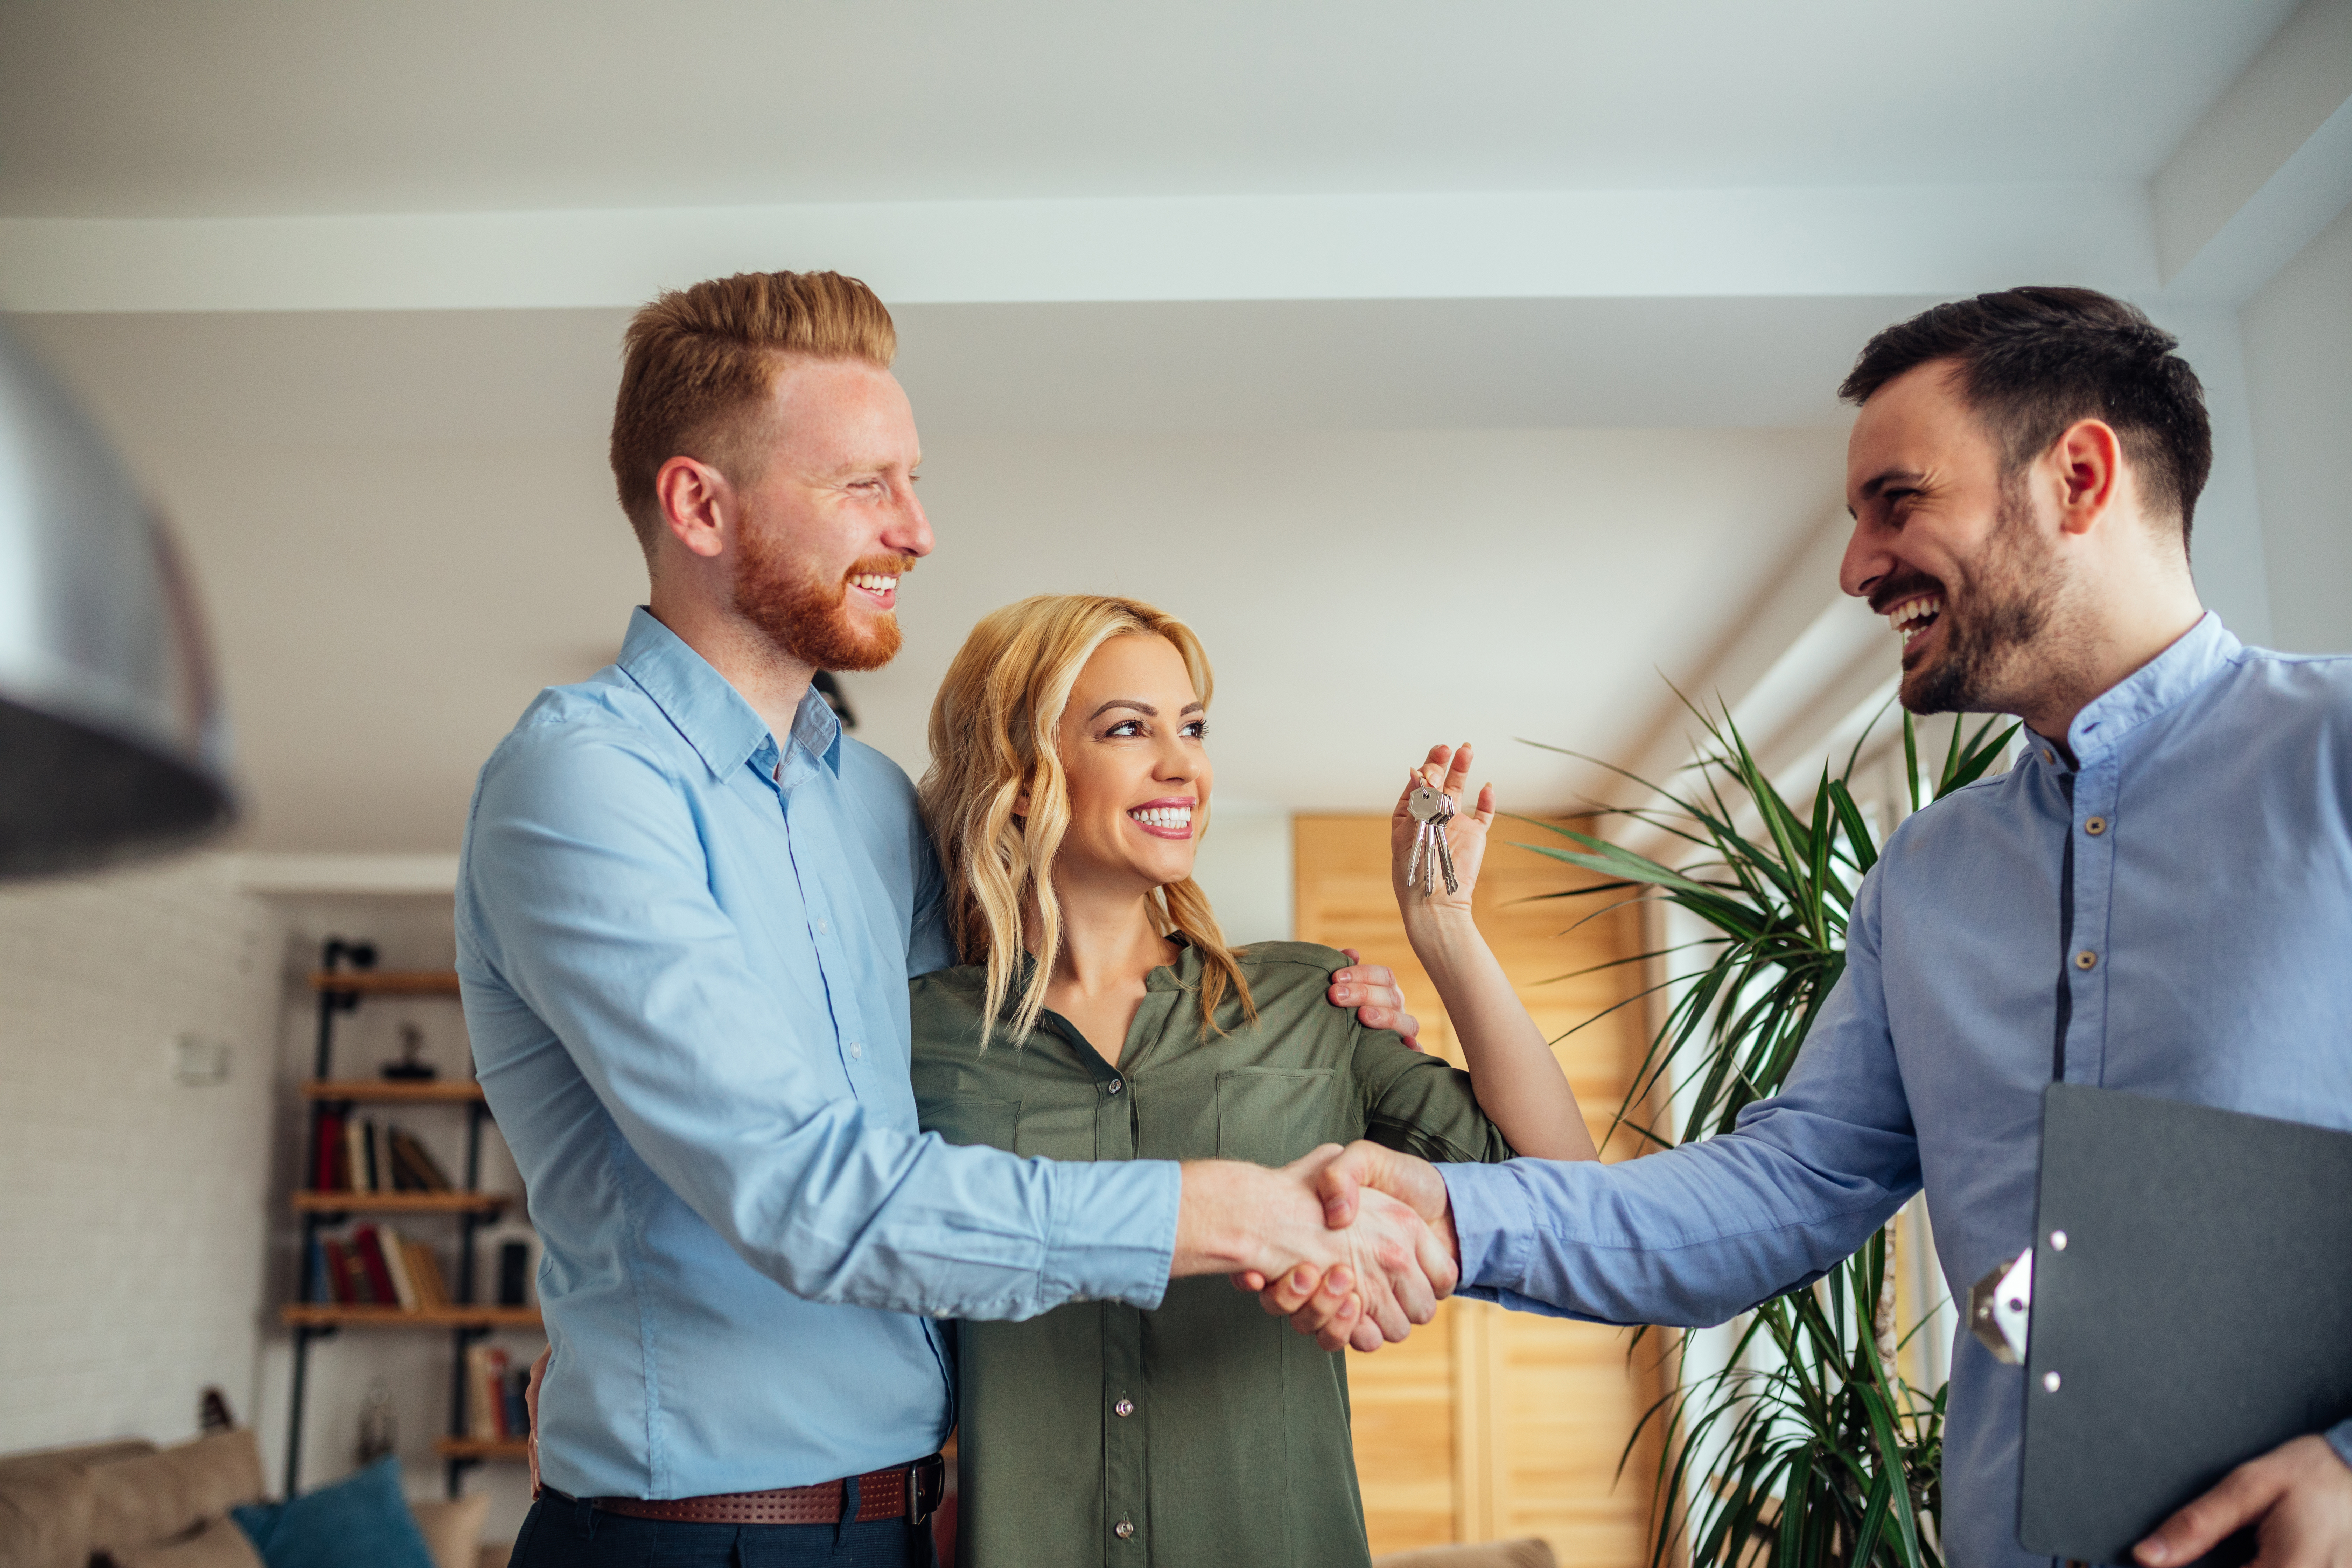 Real estate agent helping client find their dream home